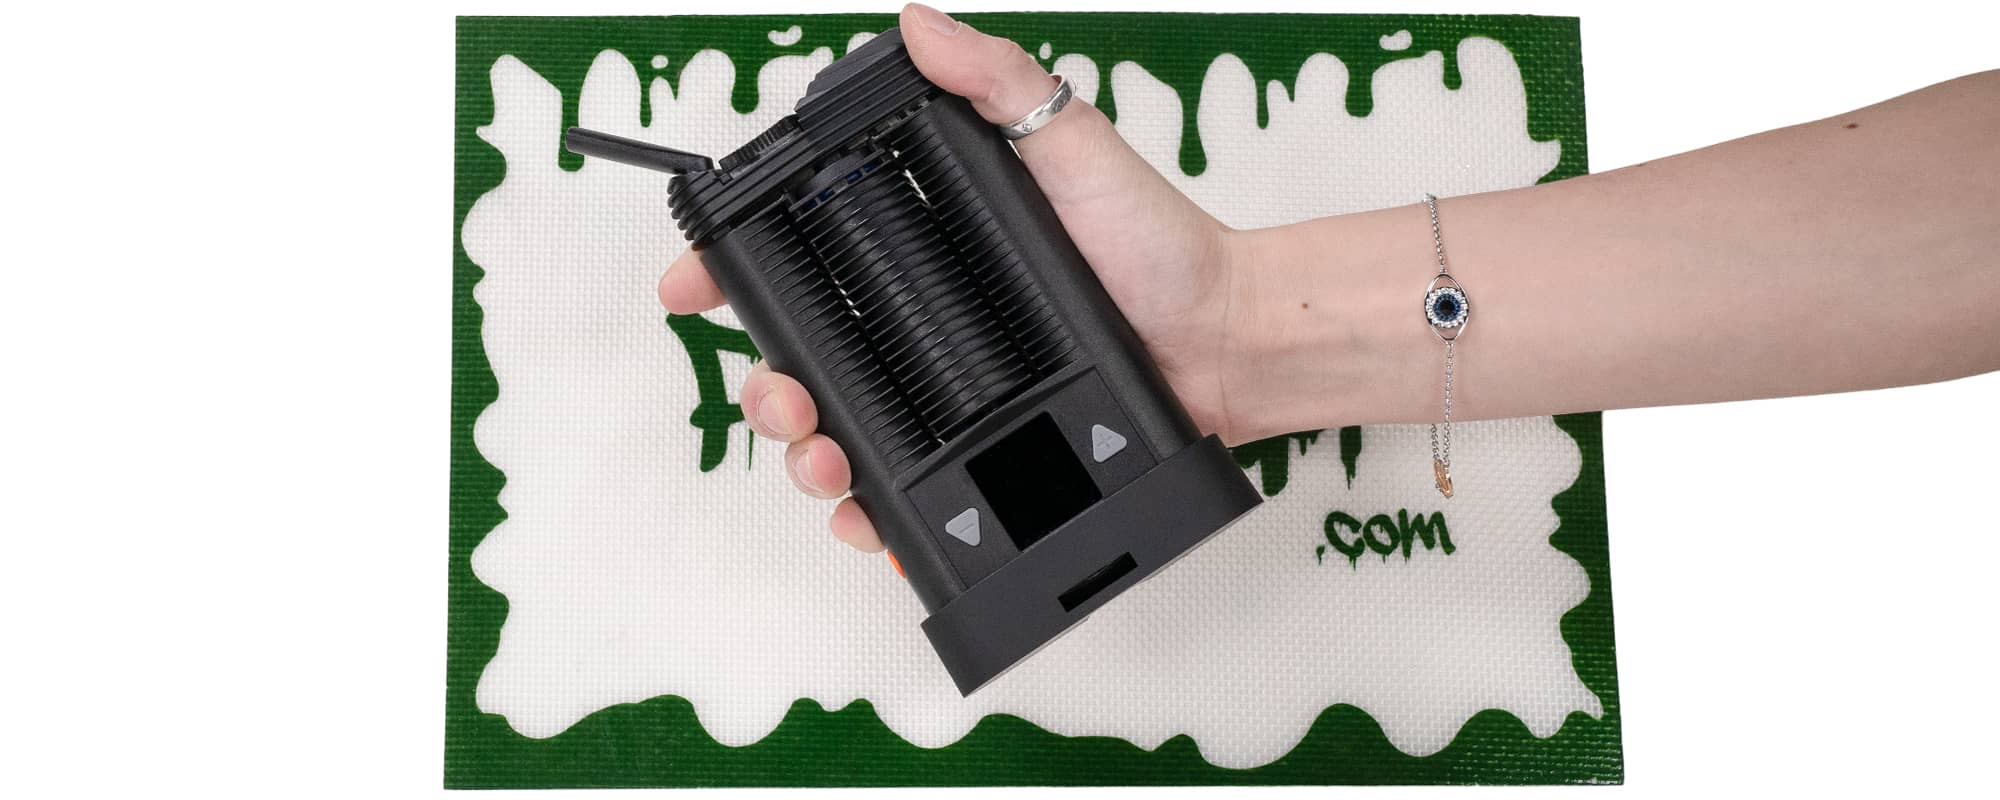 mighty vaporizer pros and cons